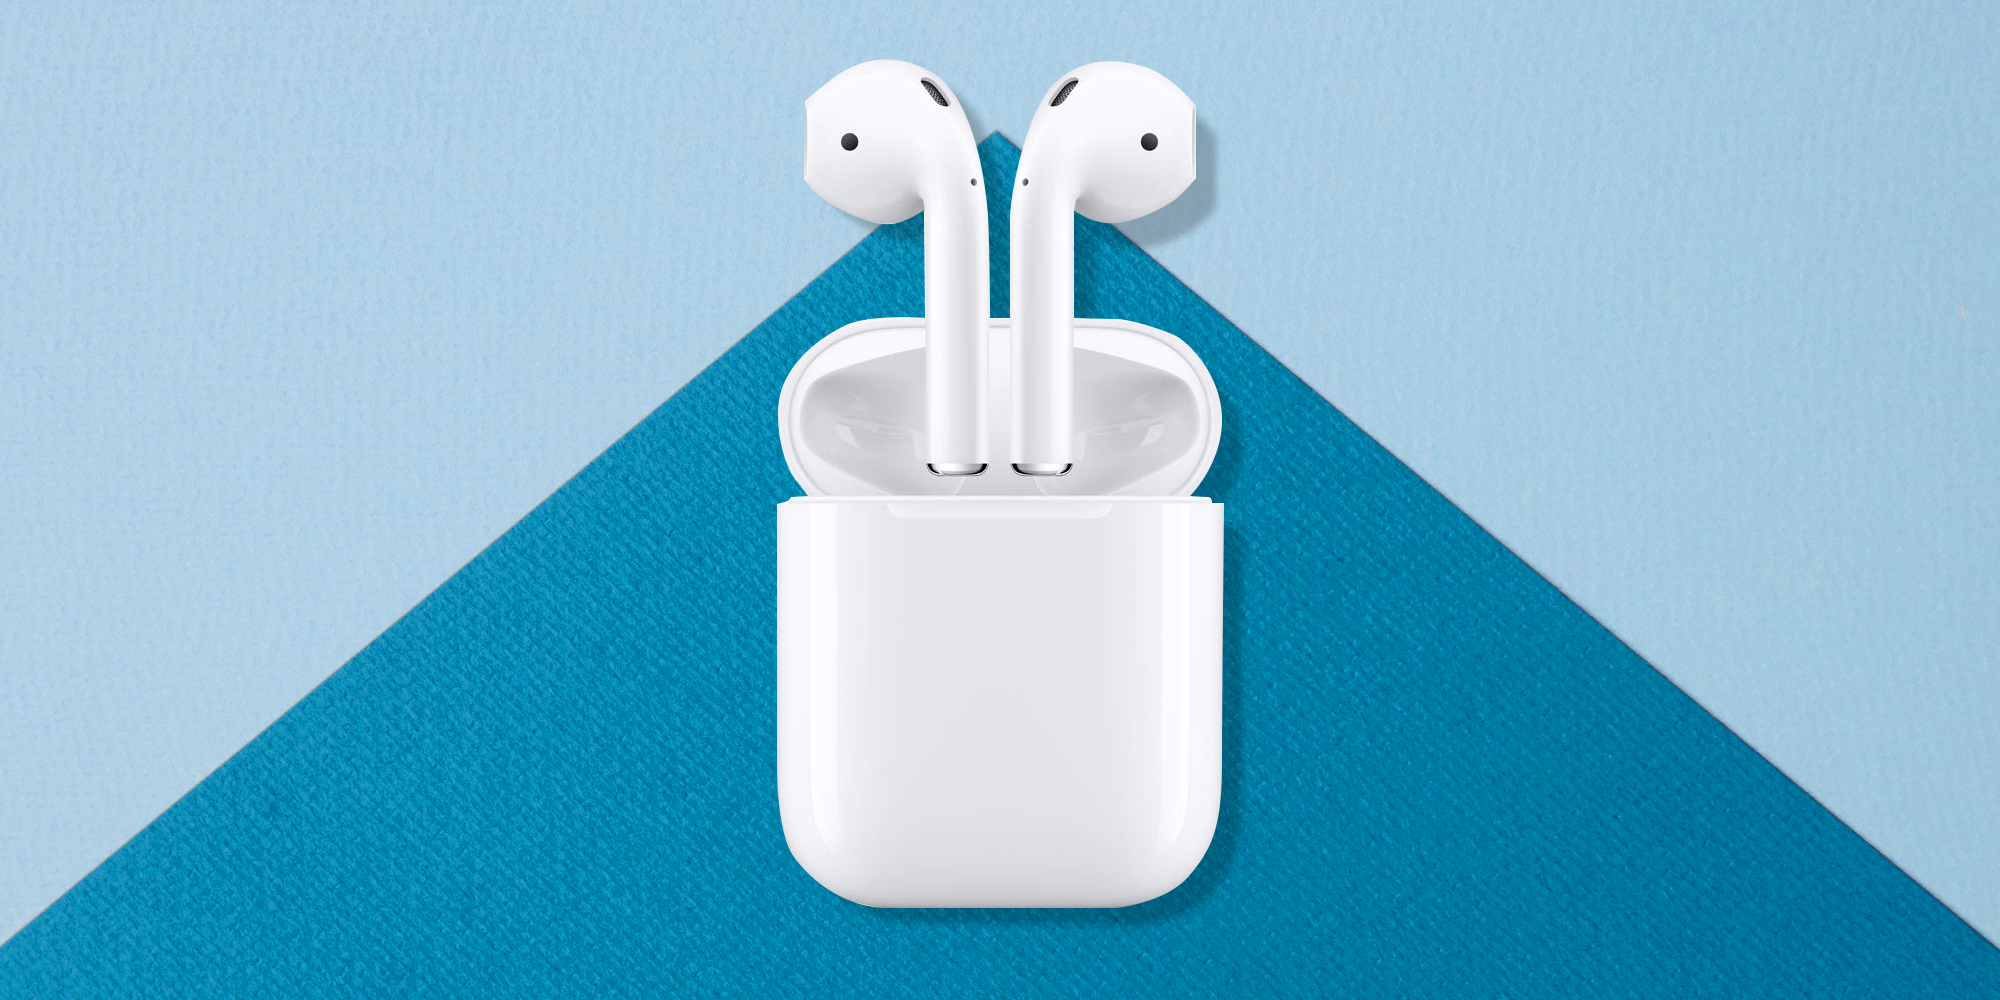 Apple AirPods Are Finally On Sale For $20 Off On Amazon Right Now